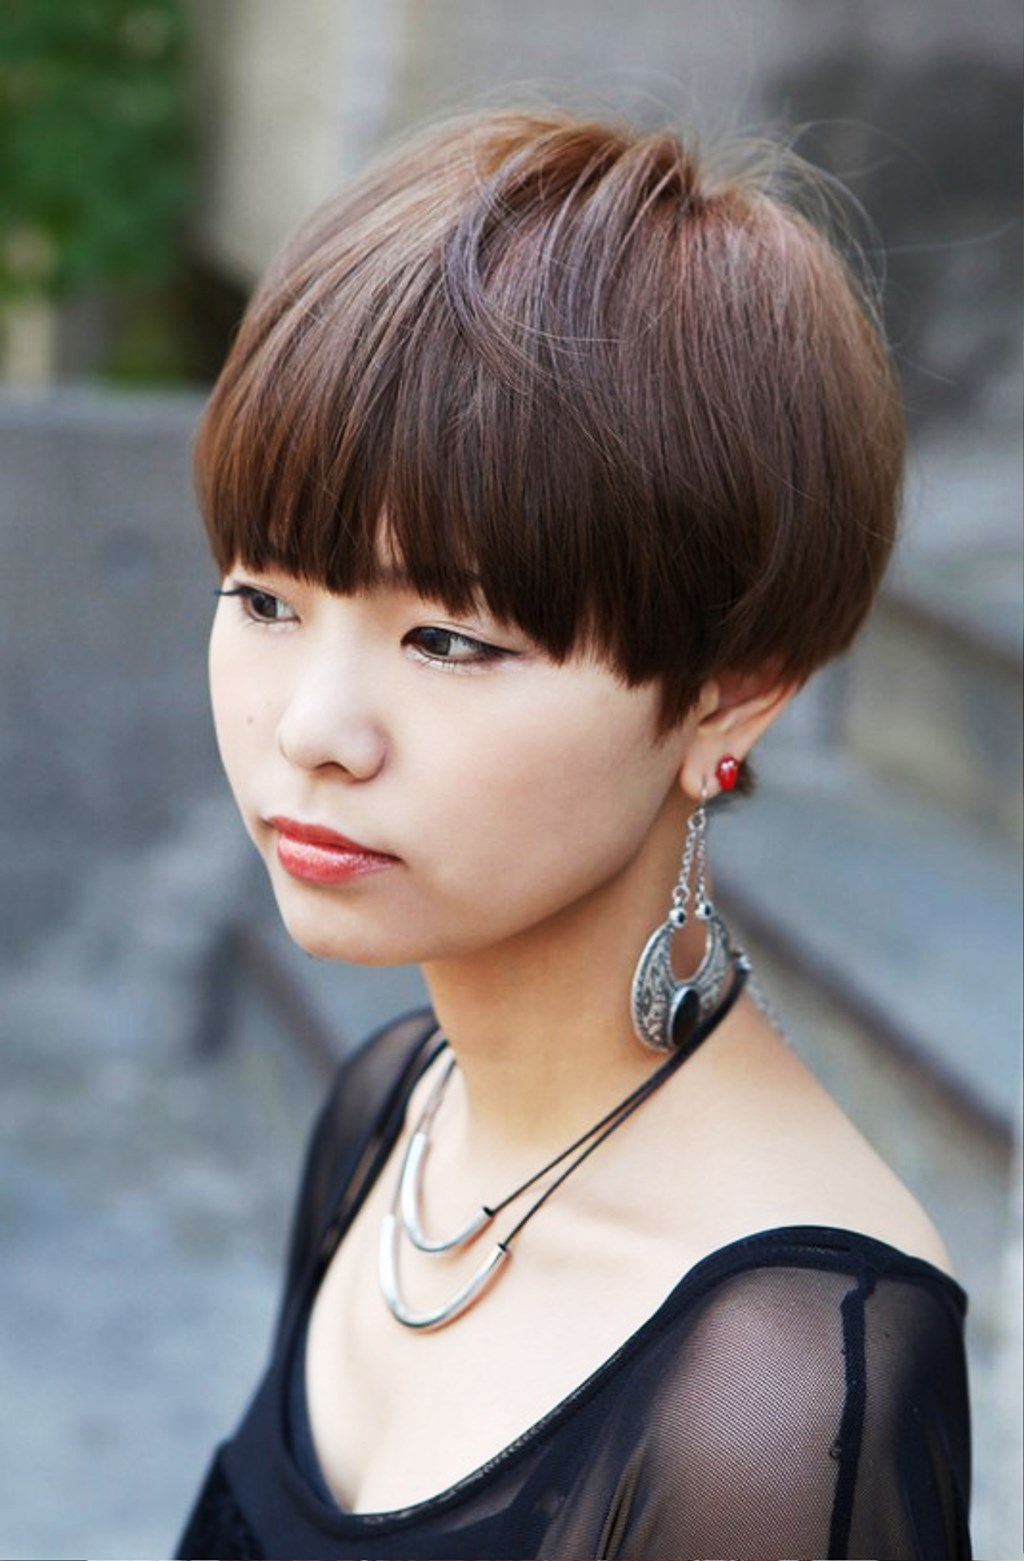 Pictures Of Cute Short Japanese Girls Hairstyle With Blunt